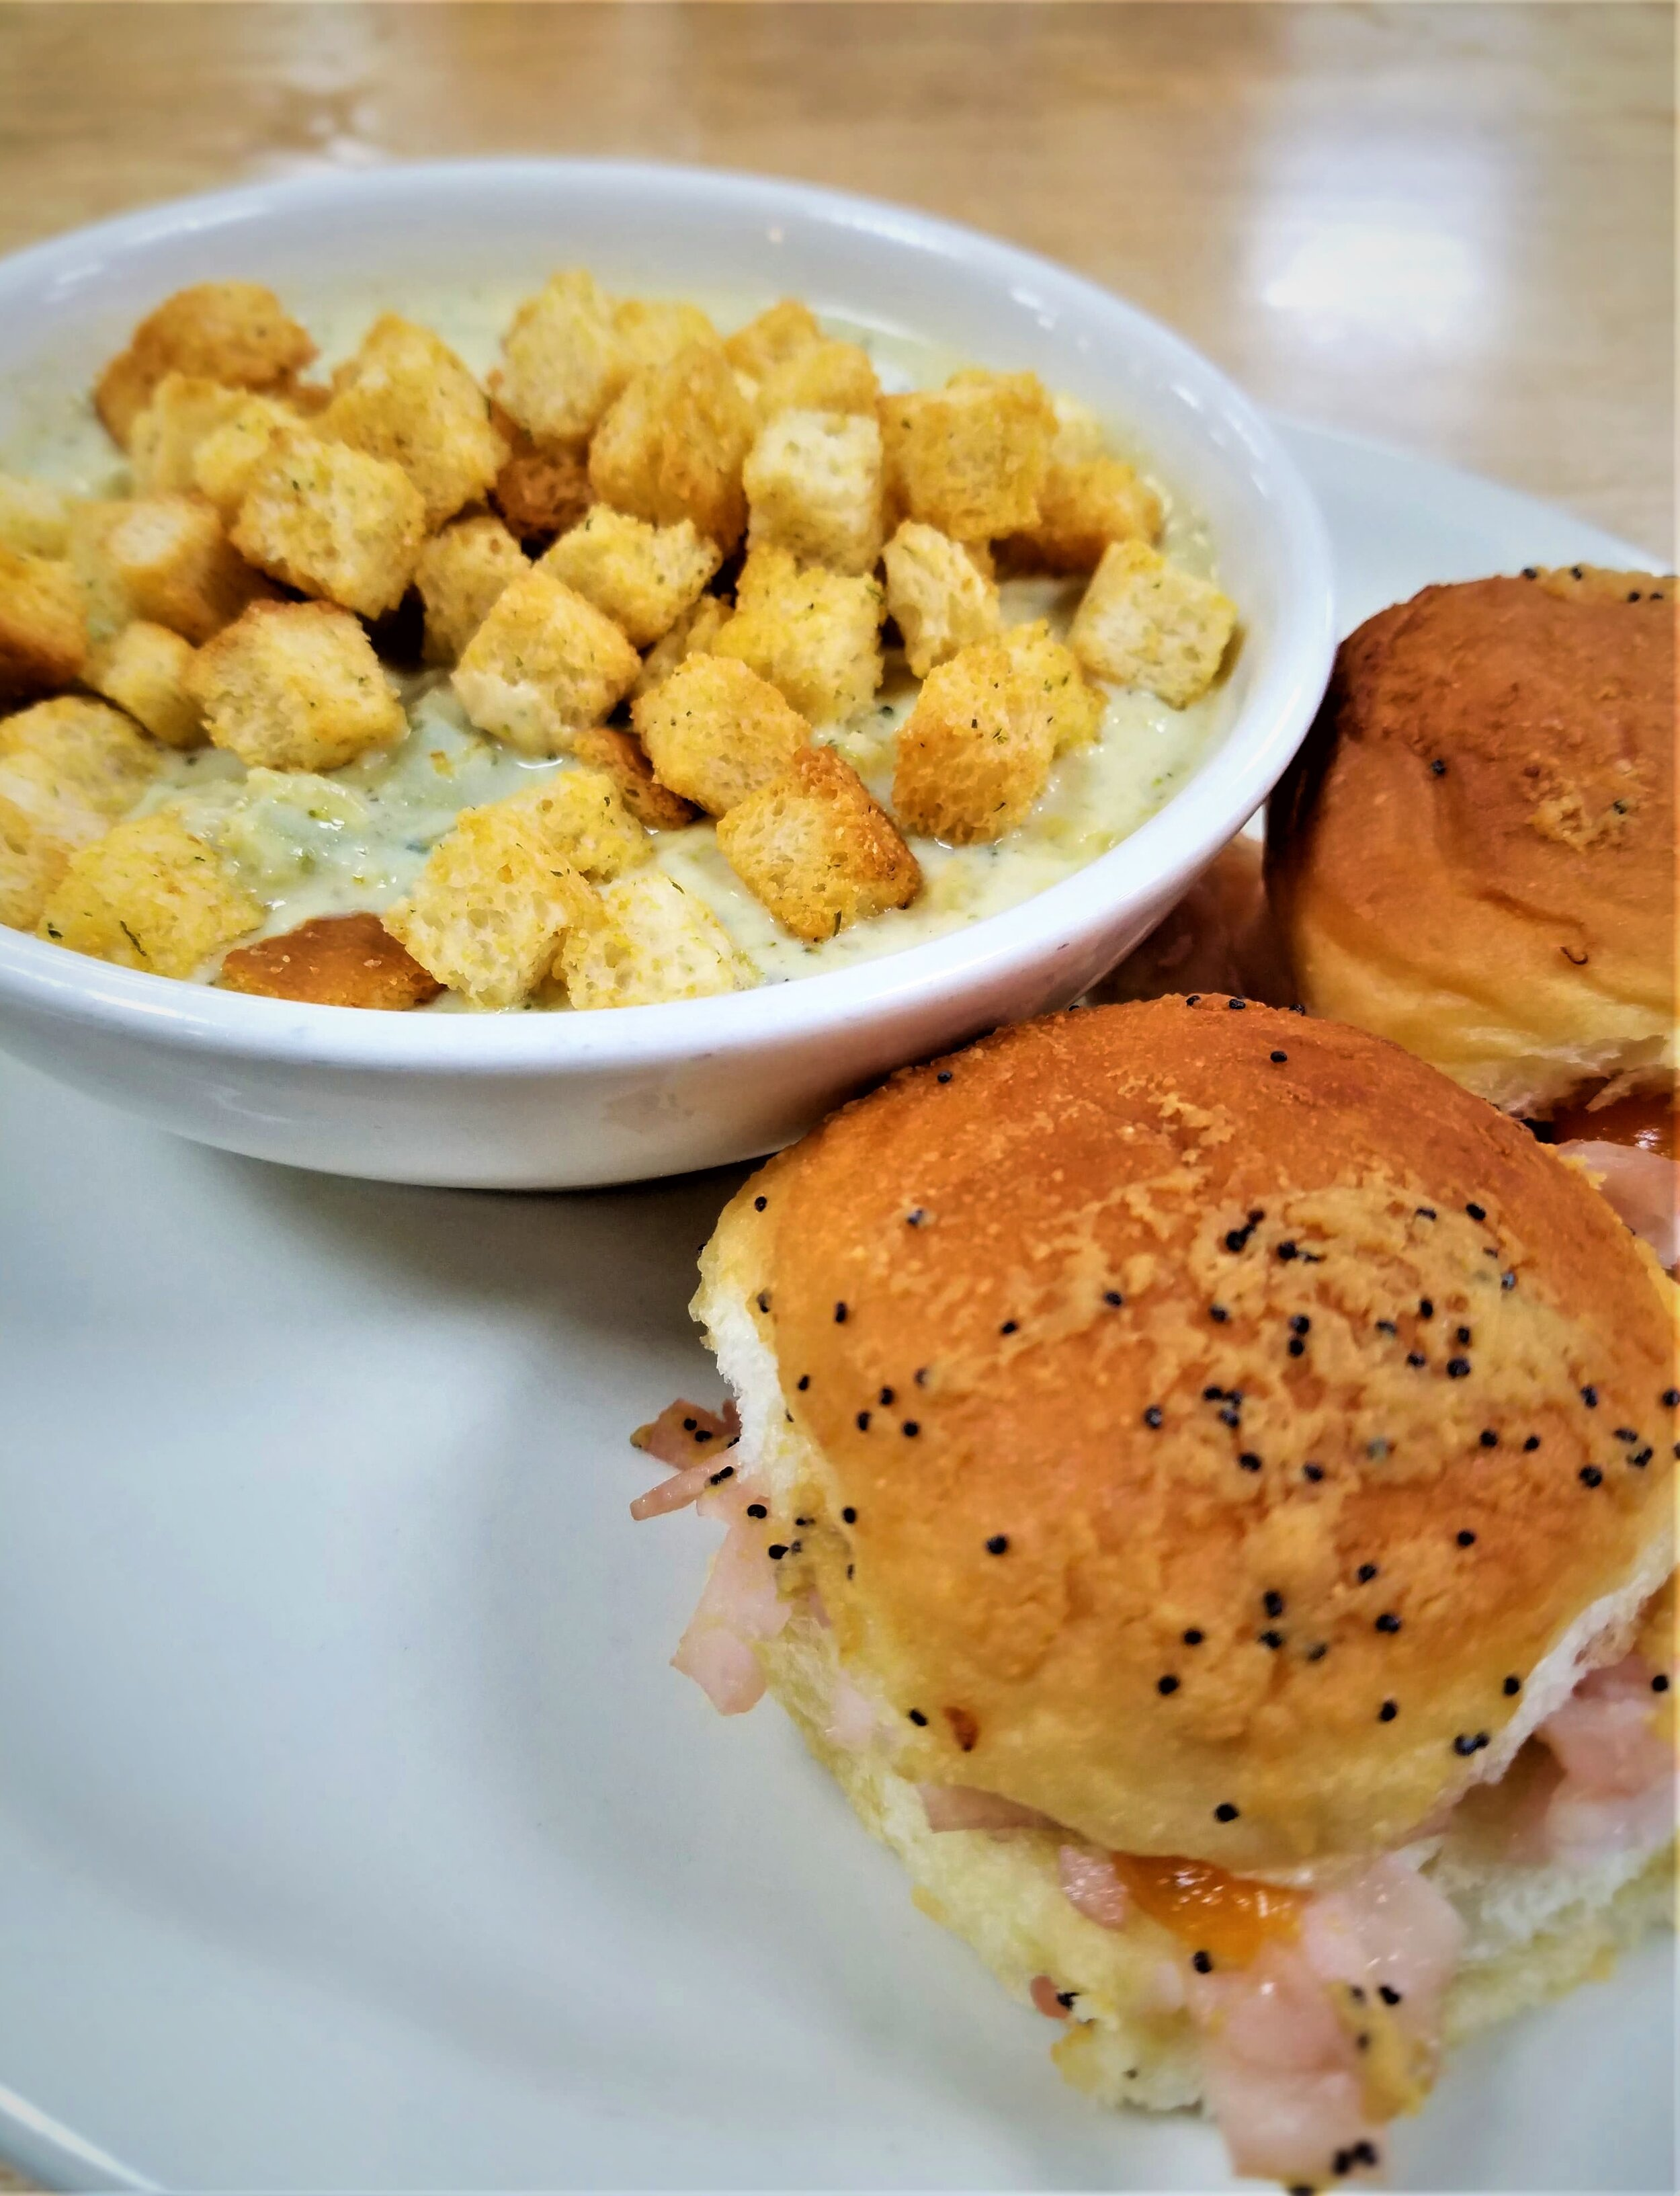 Broccoli Cheddar Soup and Turkey Cheese Sliders